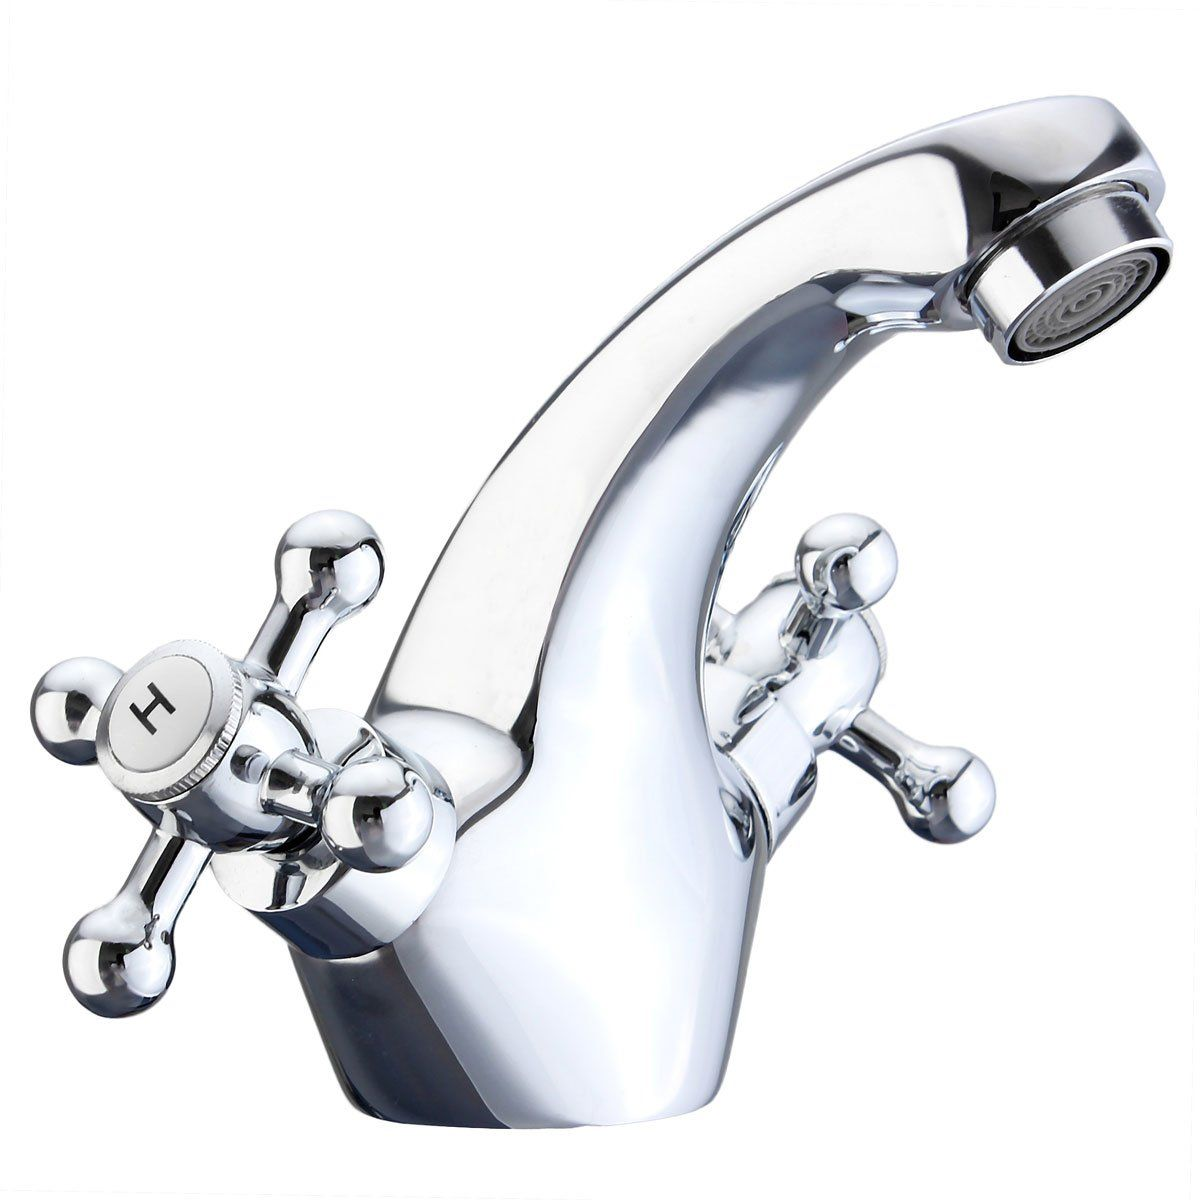 Solid Brass Basin Mixer Tap Hot/&Cold Water Tap for Kitchen Home Chromed Diamond Single Handle Bathroom Sink Faucet